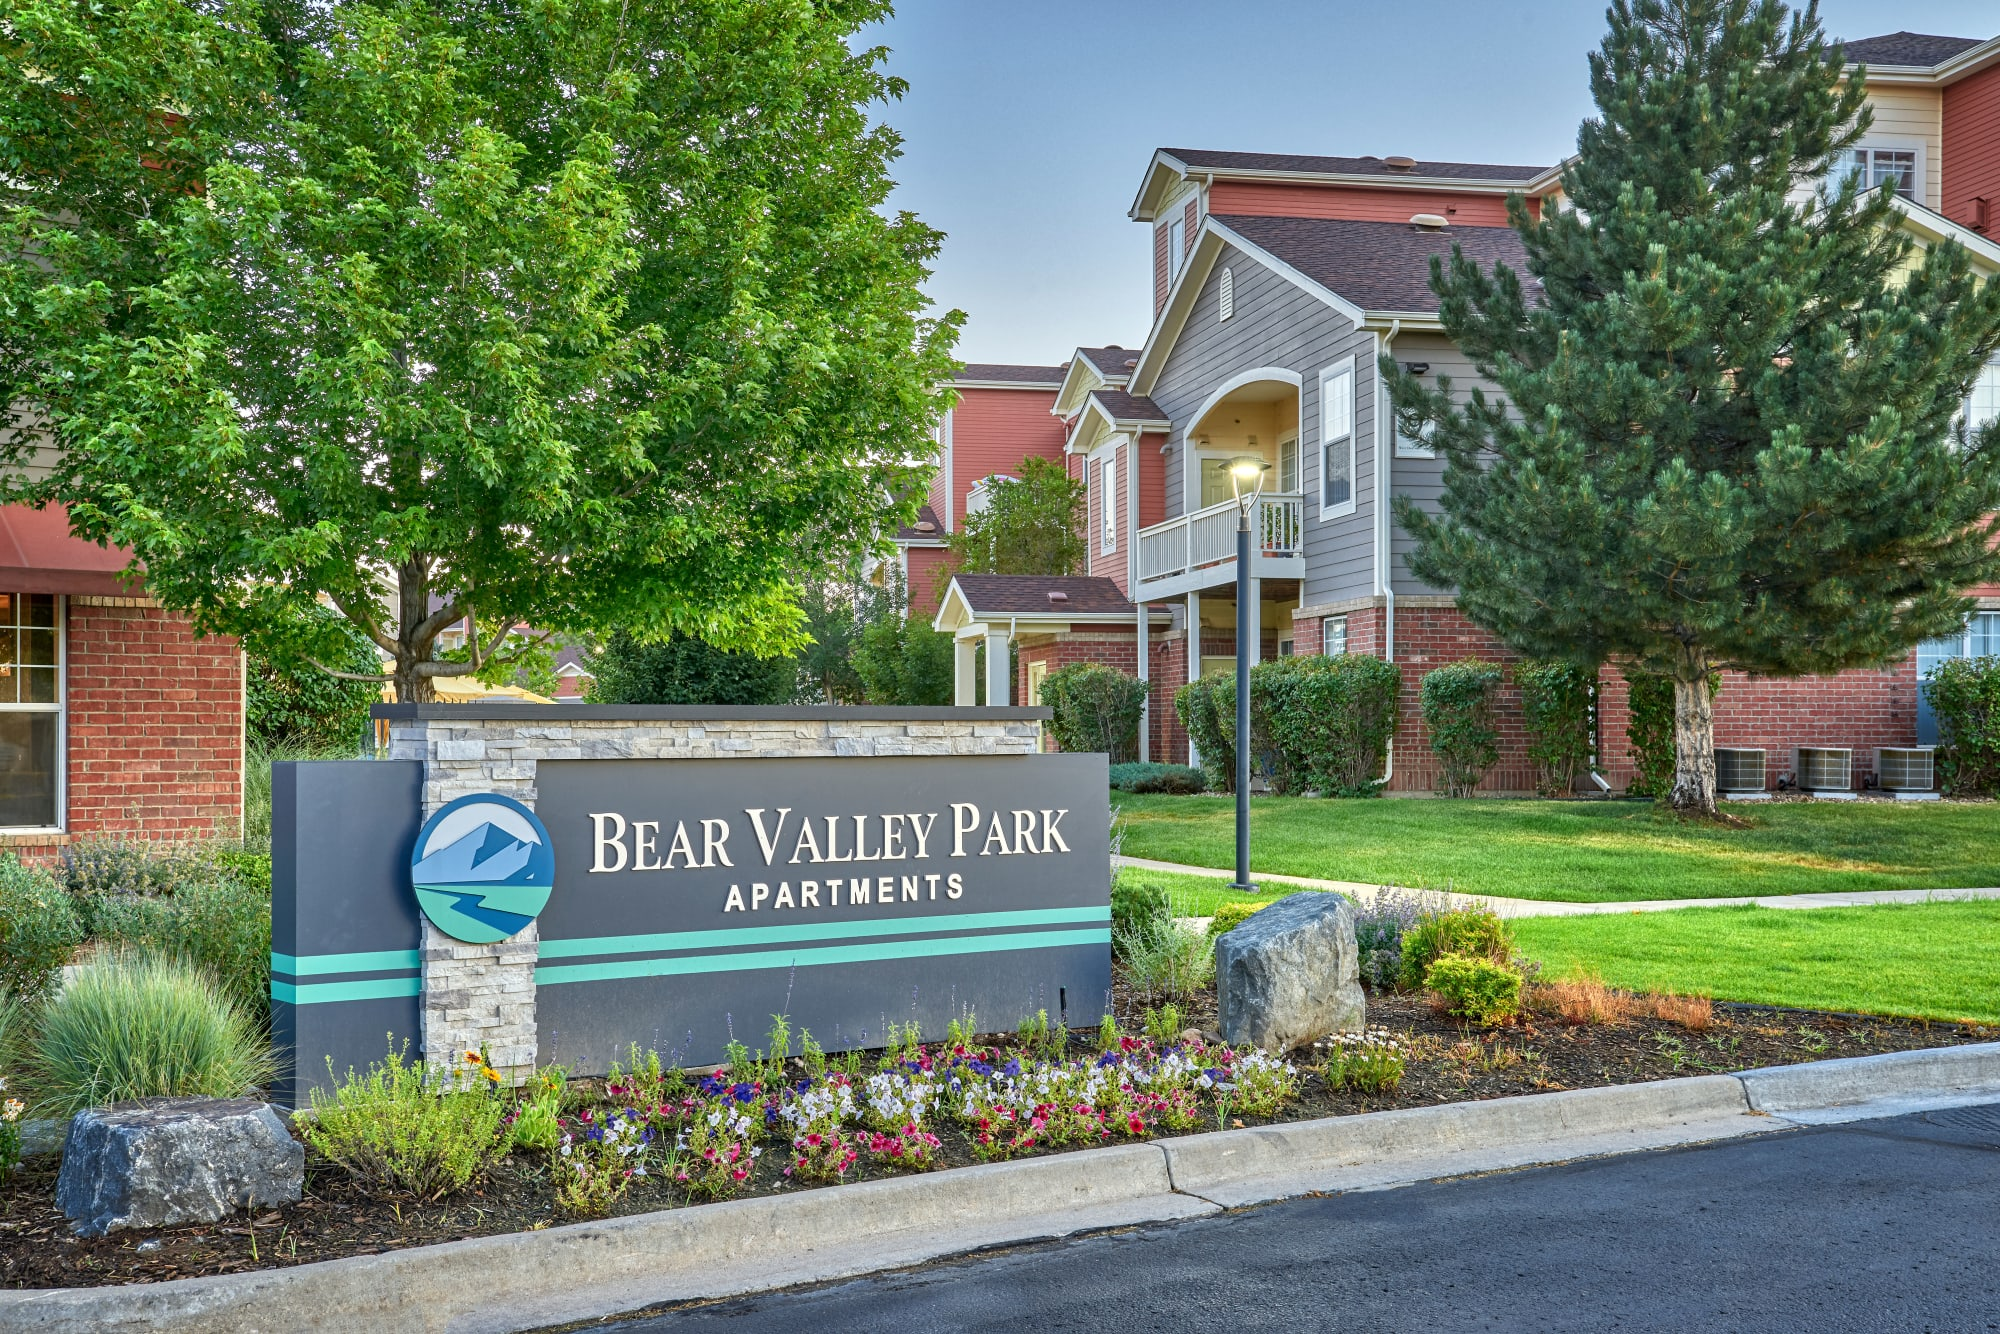 The monument sign at Bear Valley Park in Denver, Colorado